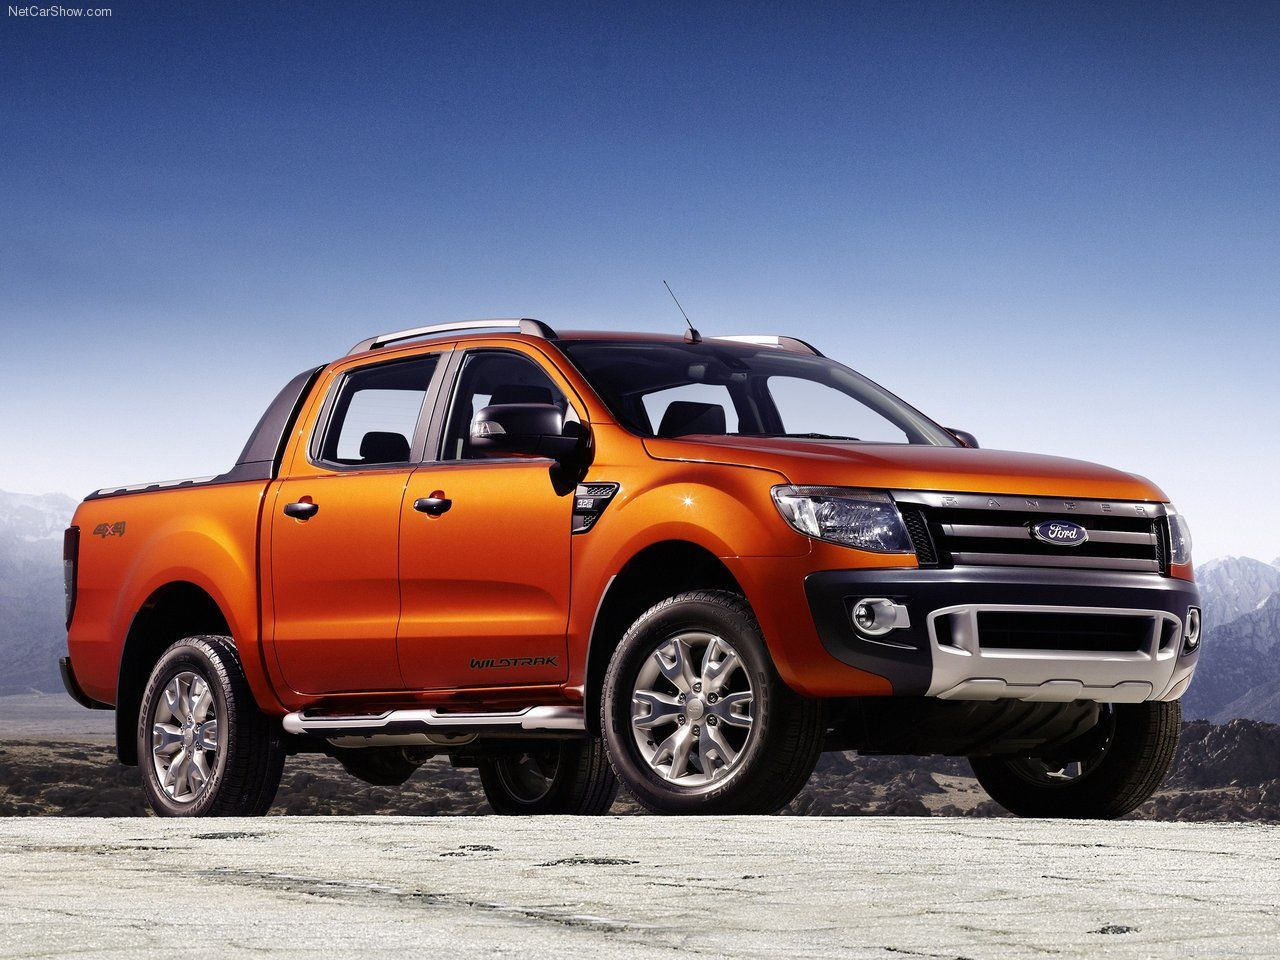 2014 Orange Ford Ranger Review Car Picture Car Hd